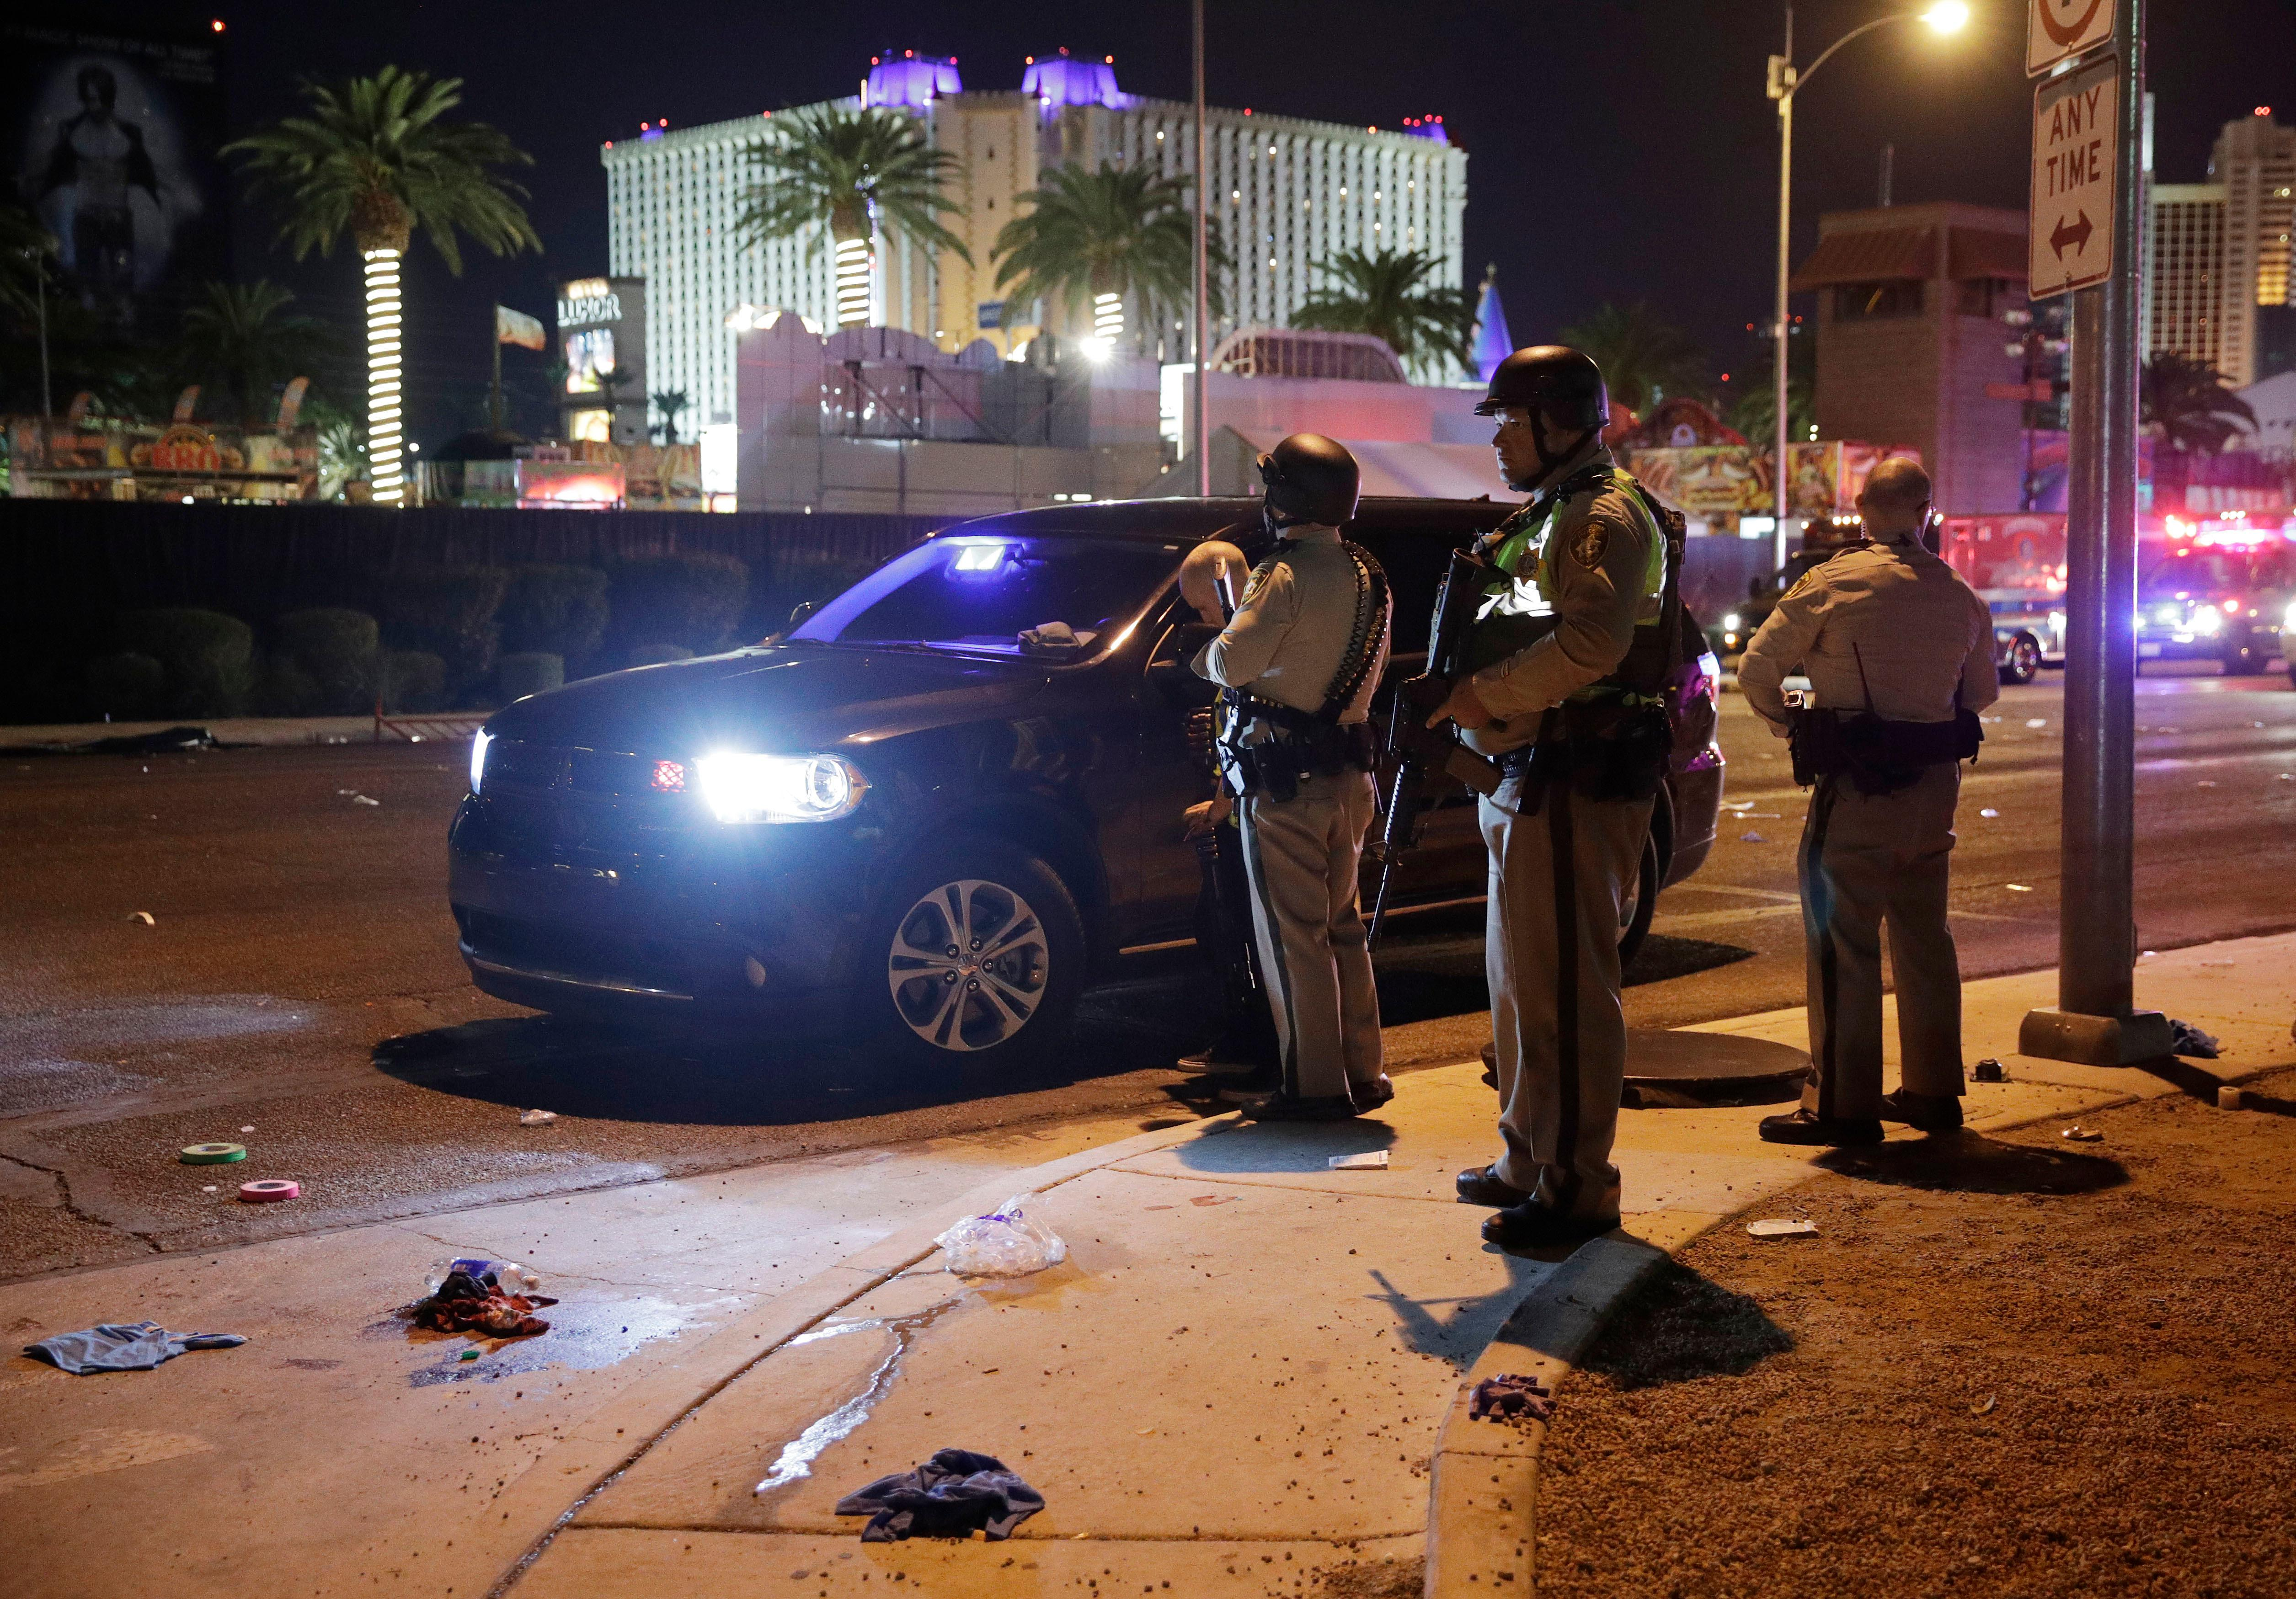 Las Vegas Police stand at the scene of a shooting along the Las Vegas Strip, Monday, Oct. 2, 2017, in Las Vegas. Multiple victims were being transported to hospitals after a shooting late Sunday at a music festival on the Las Vegas Strip. (AP Photo/John Locher)